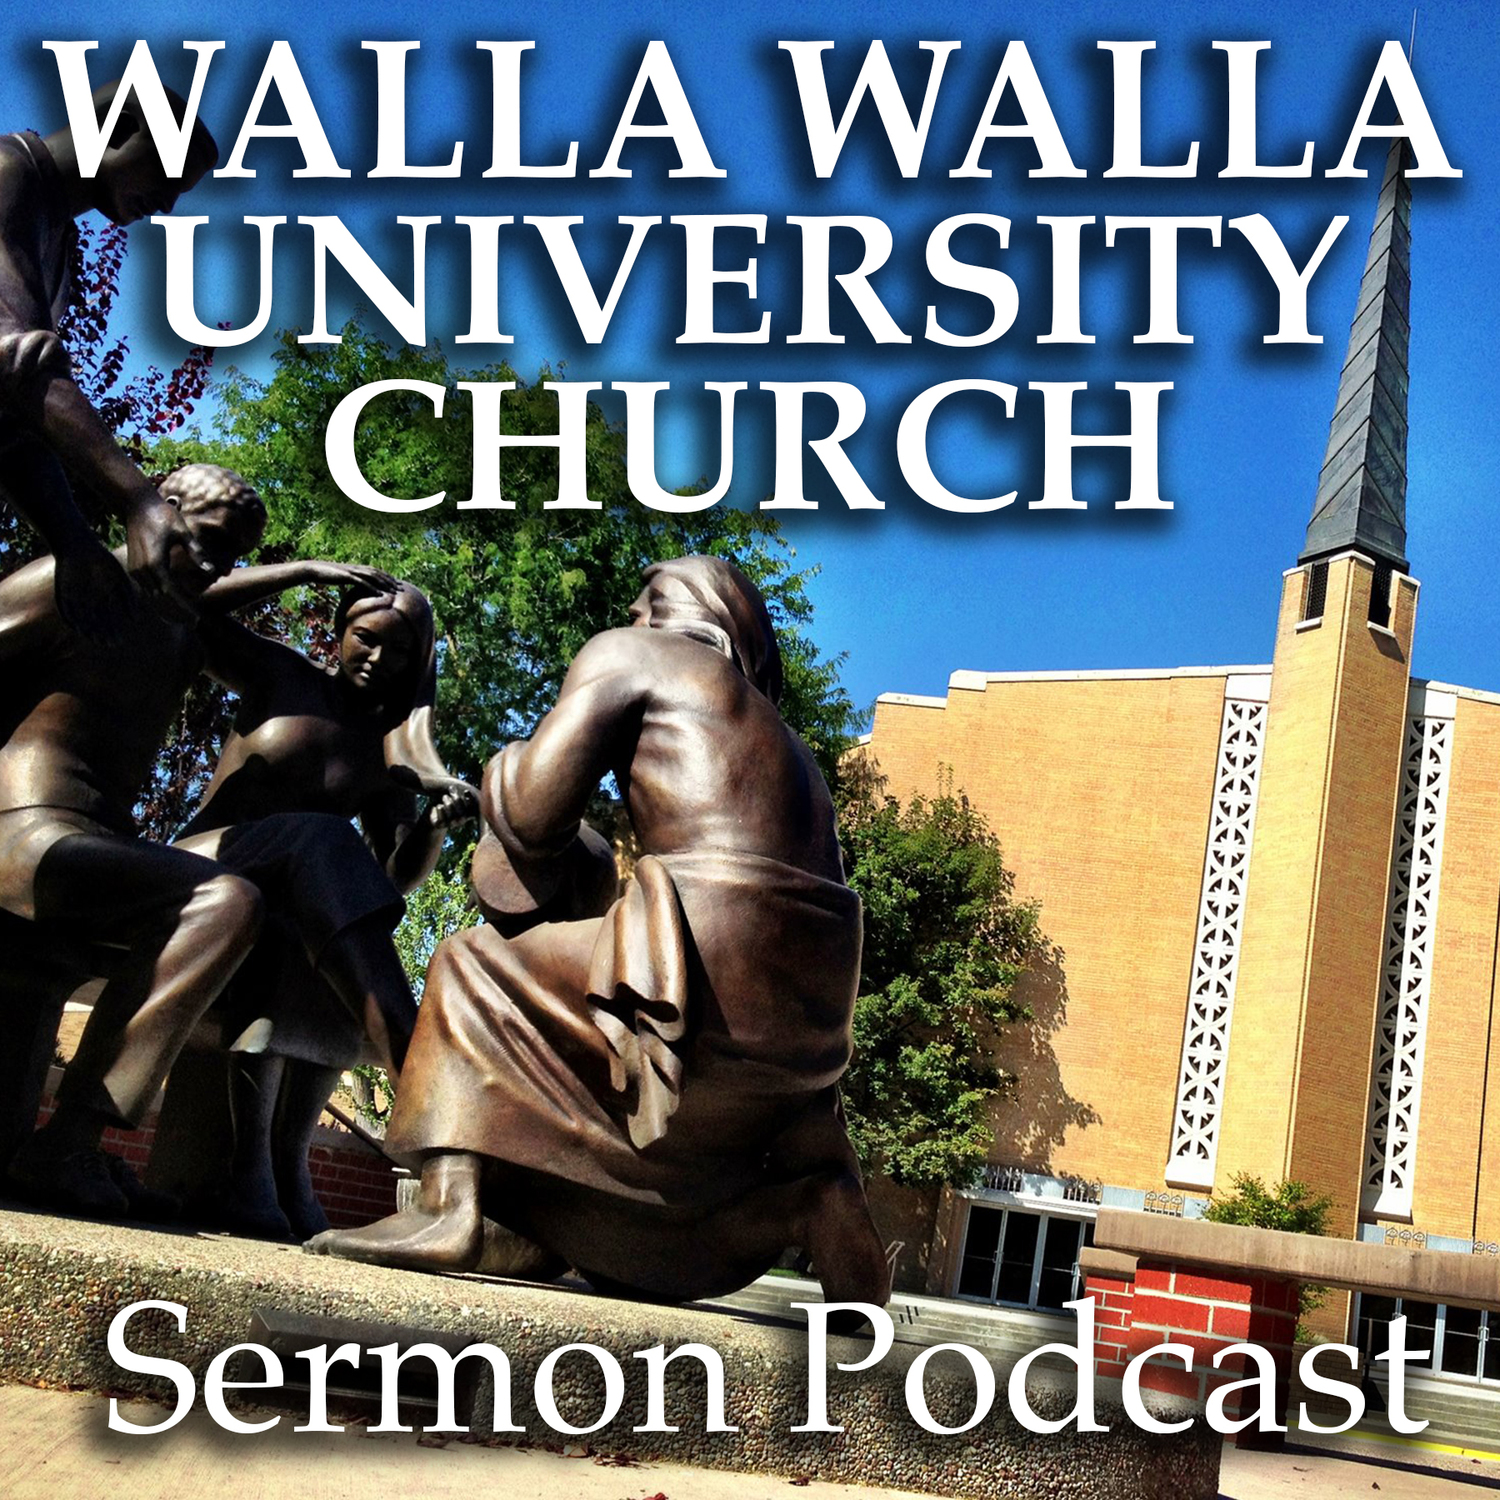 Sermon Podcast - Walla Walla University Church